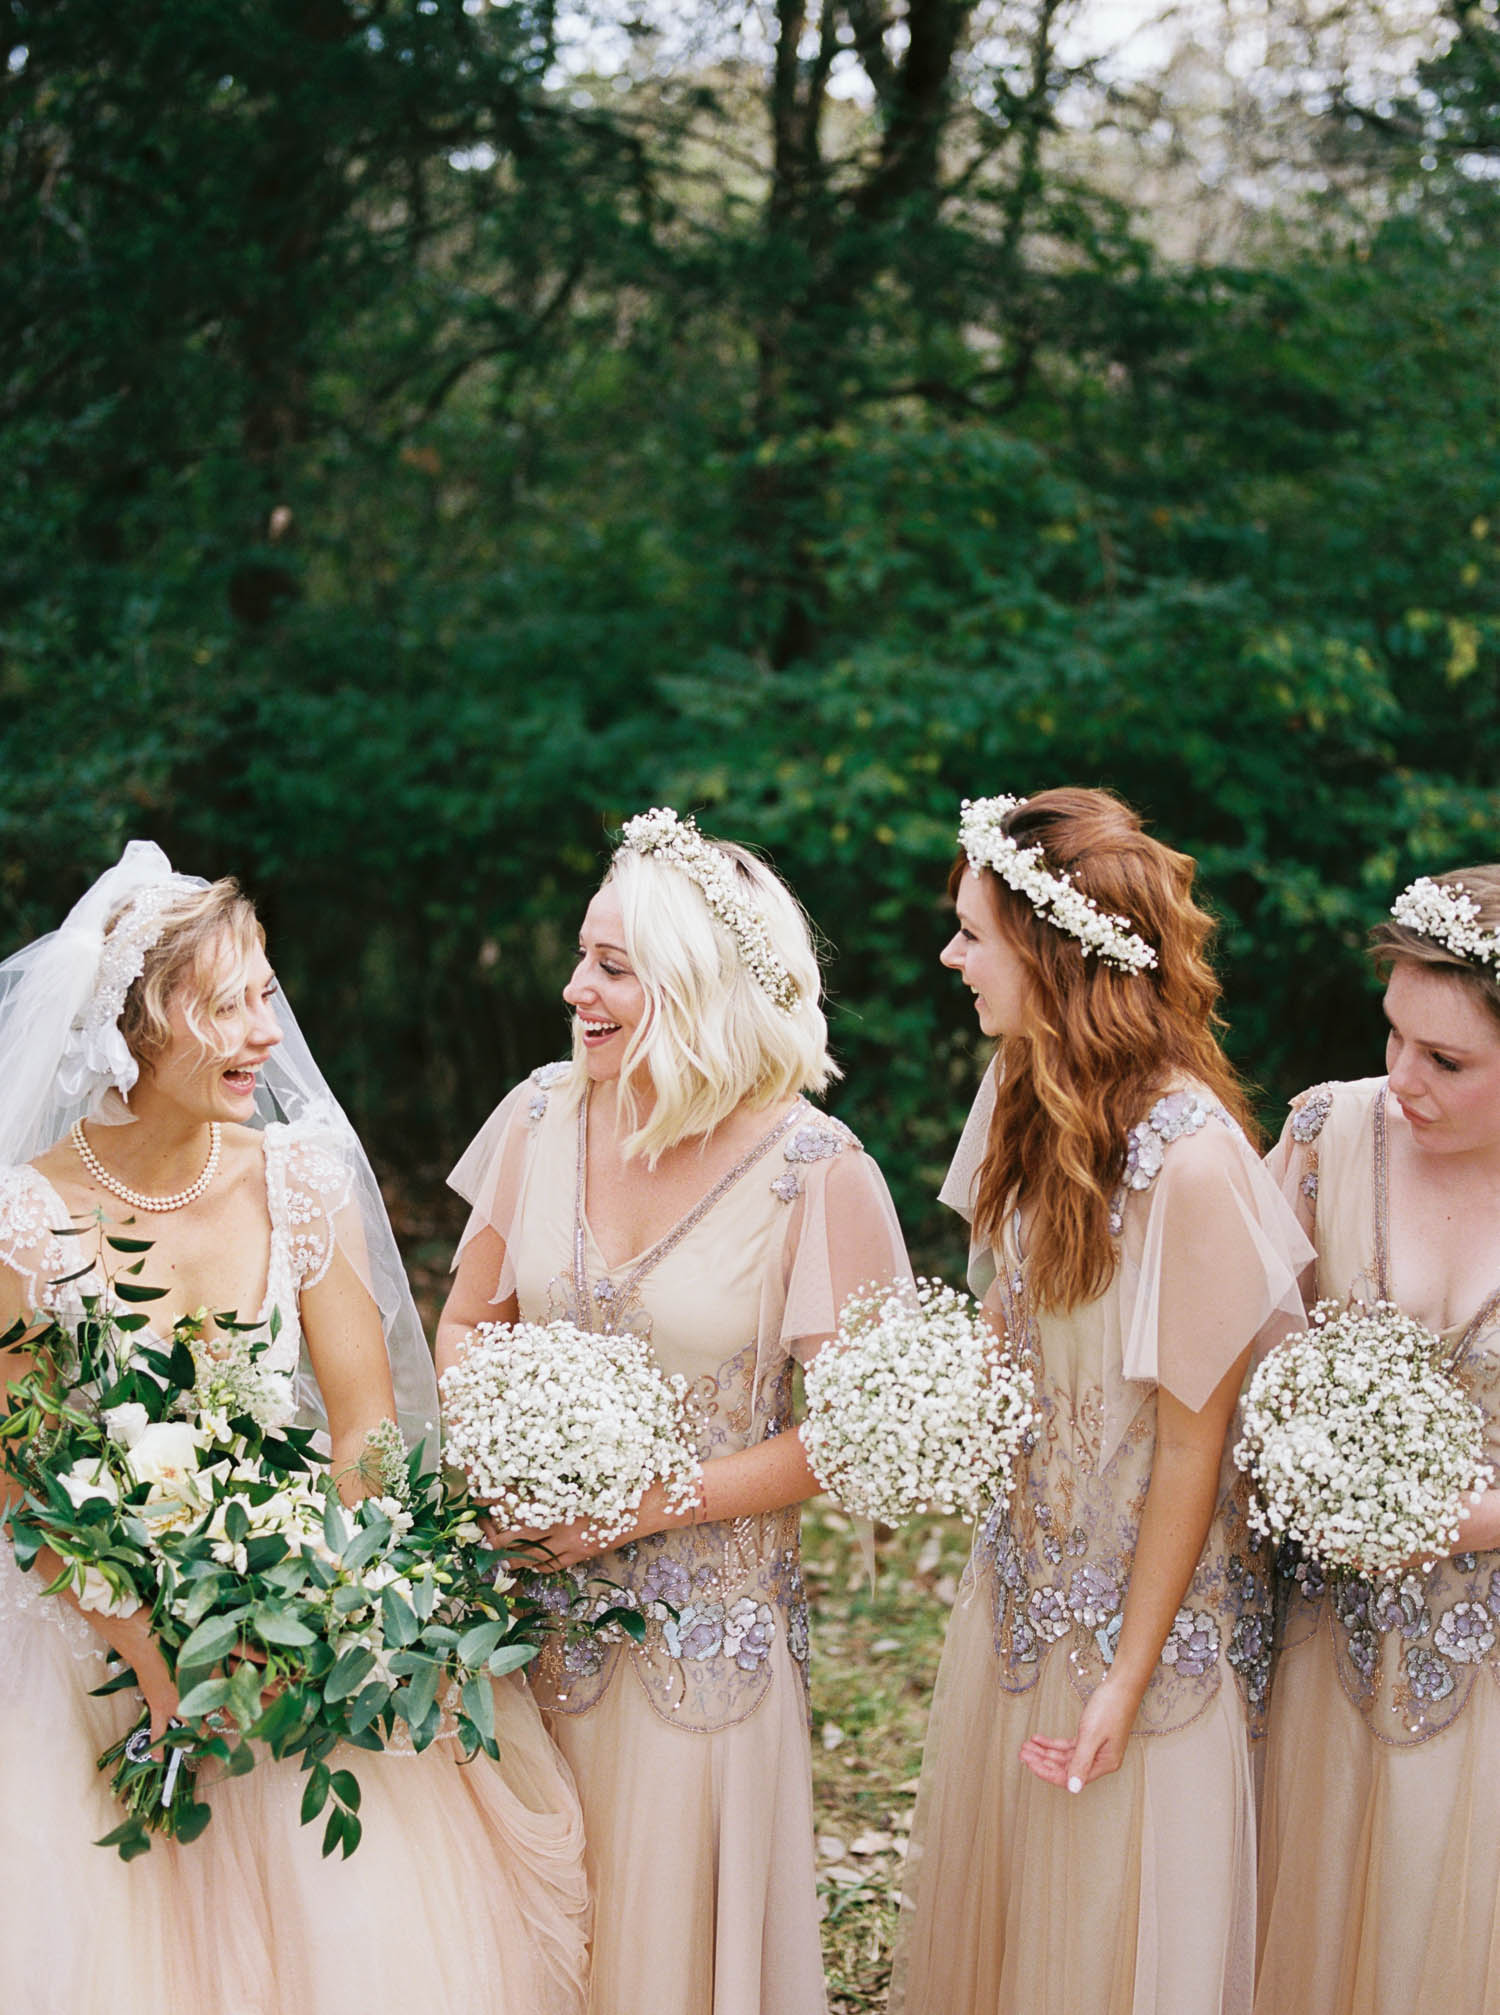 Bohemian bridesmaid style with flower crowns. Nashville Wedding Florist.